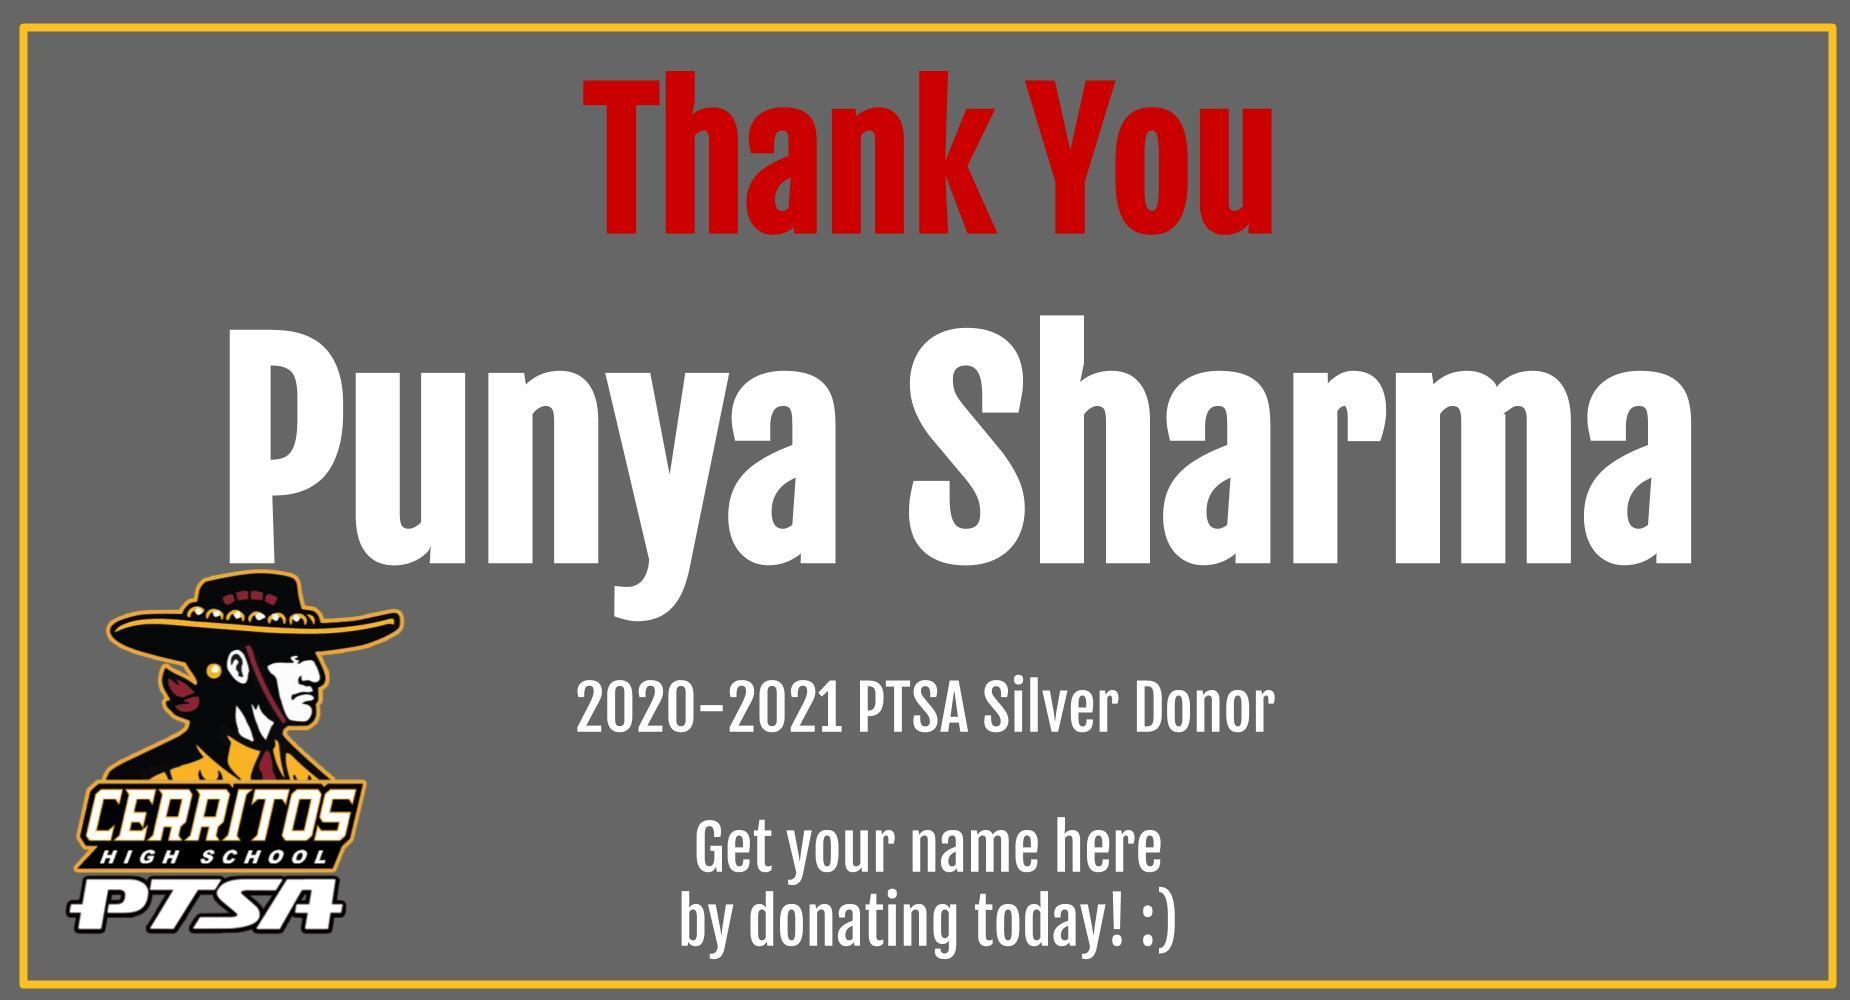 Thank You Punya Sharma PTSA Donor